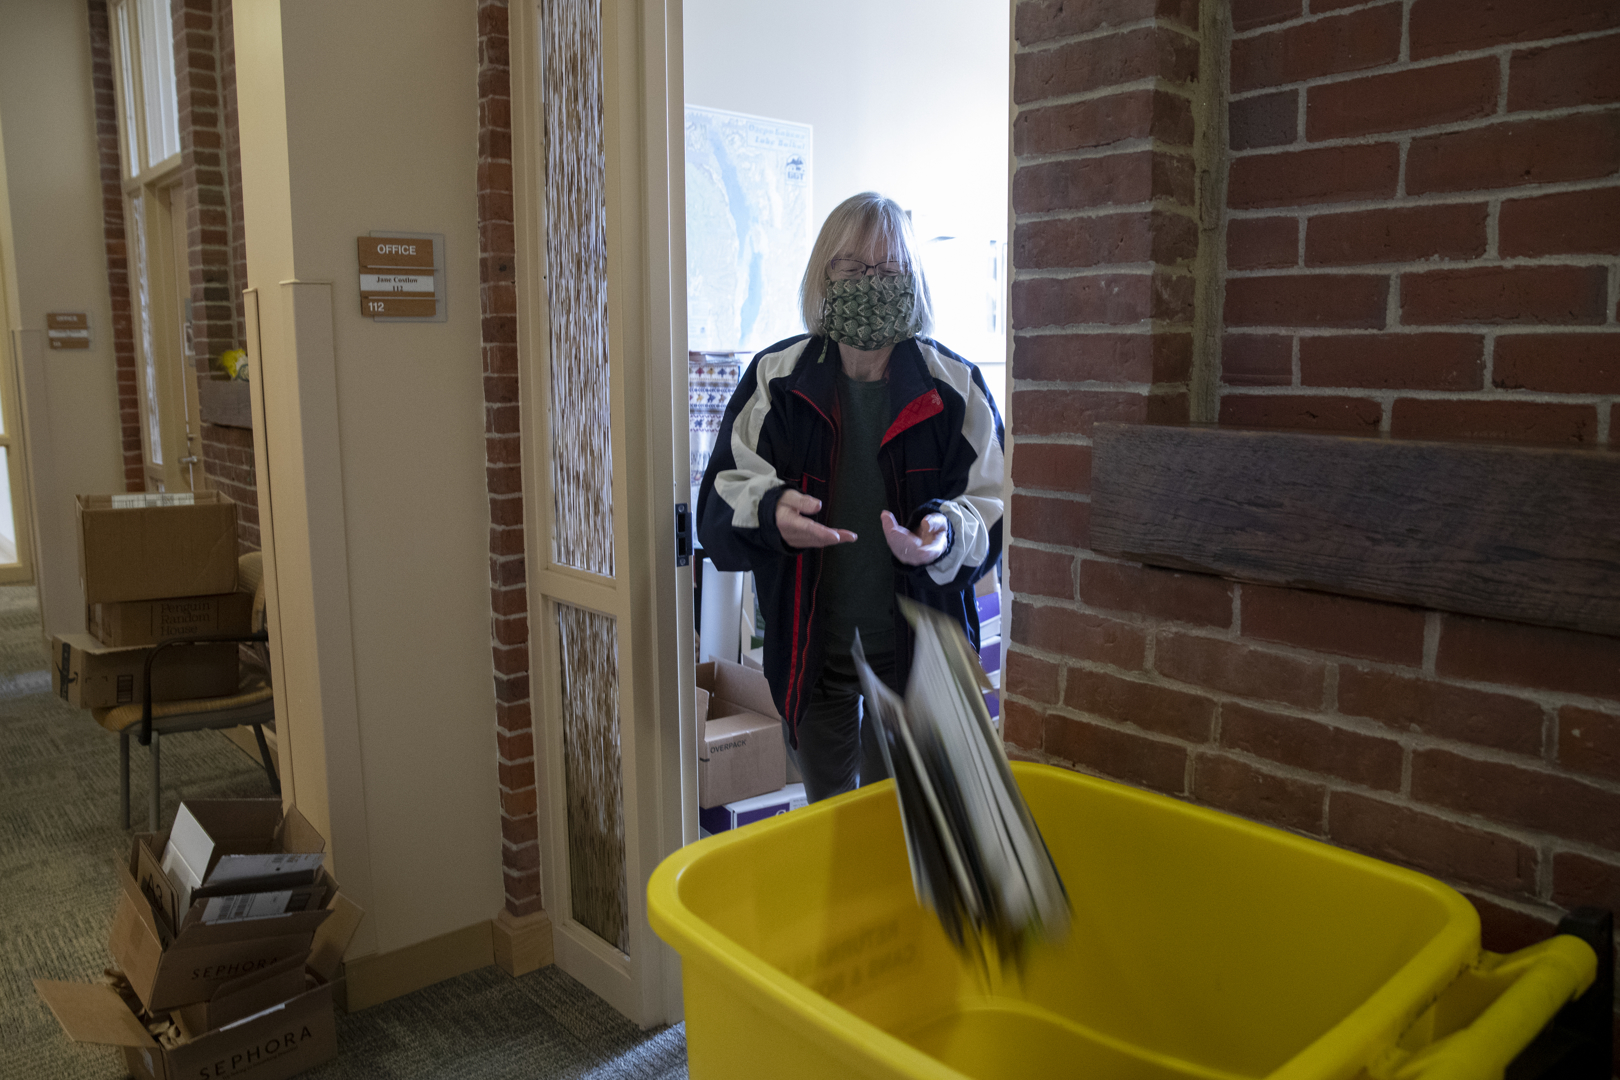 Costlow tosses some papers into a recycling bin outside of her Hedge Hall office. (Phyllis Graber Jensen/Bates College)